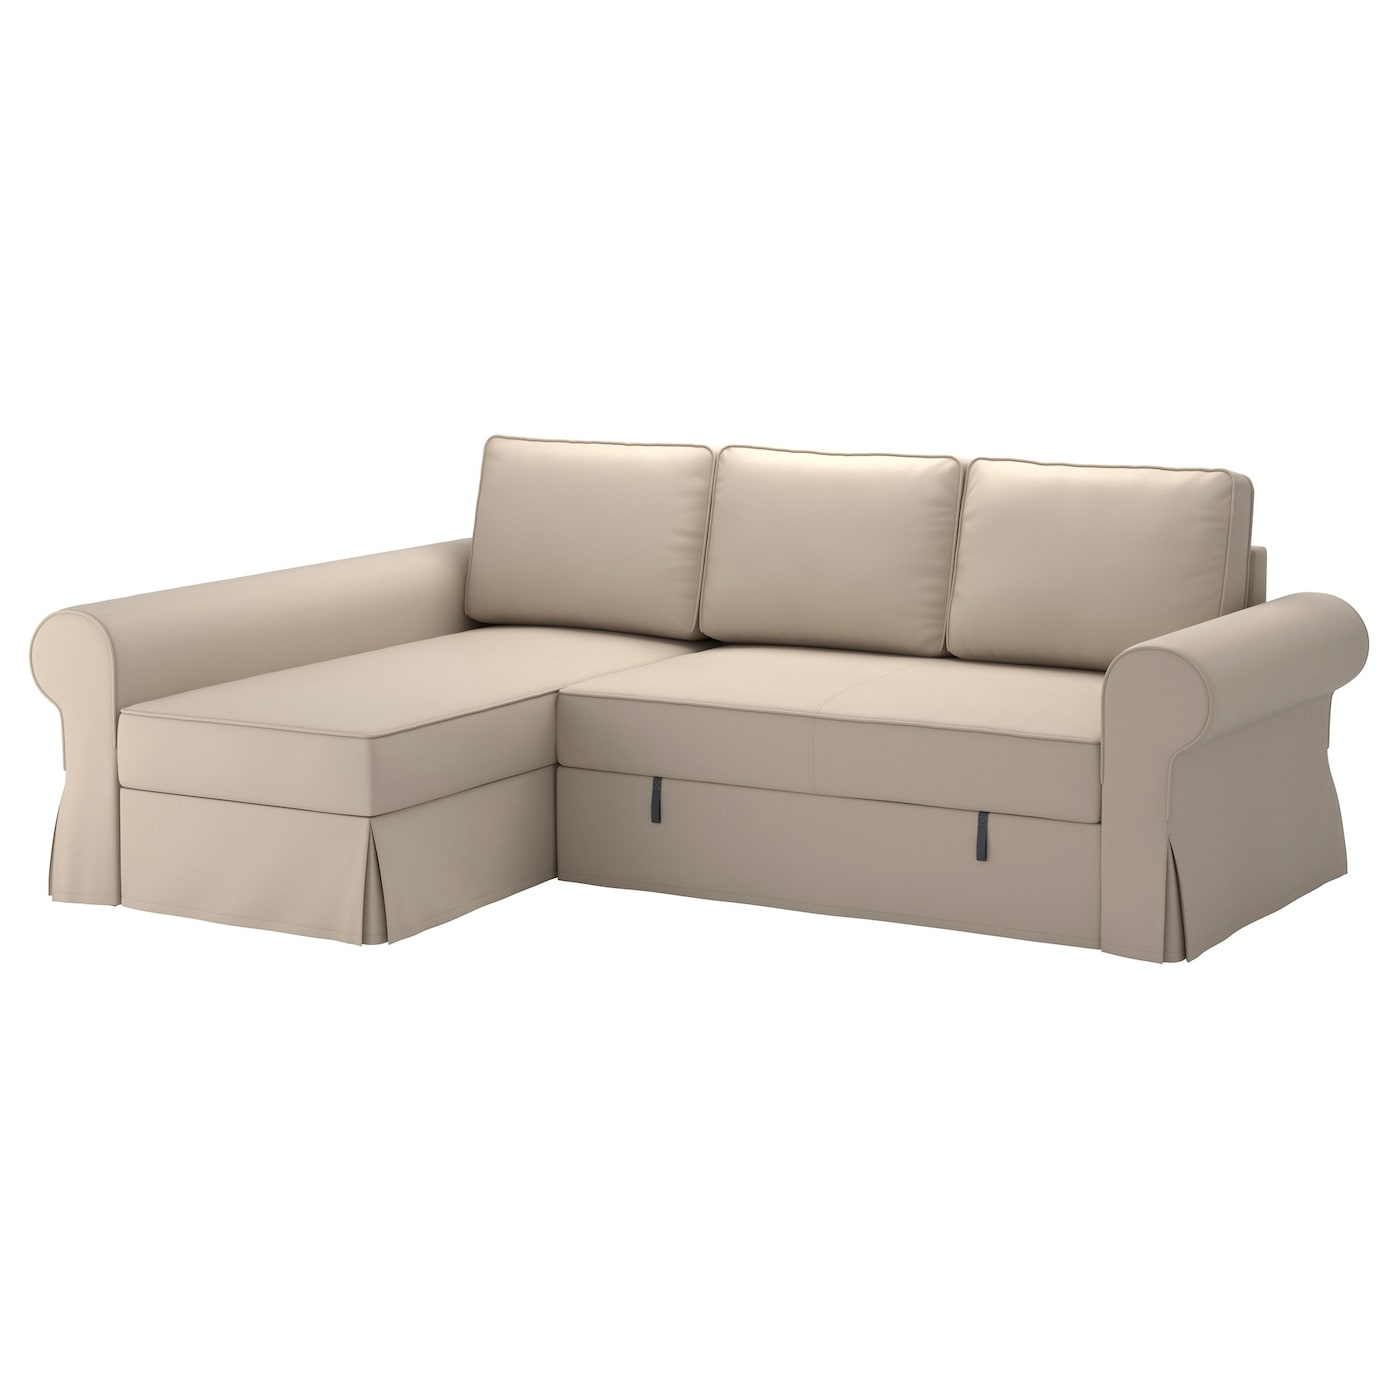 Backabro sofa bed with chaise longue ramna beige ikea for Chaise bed sofa